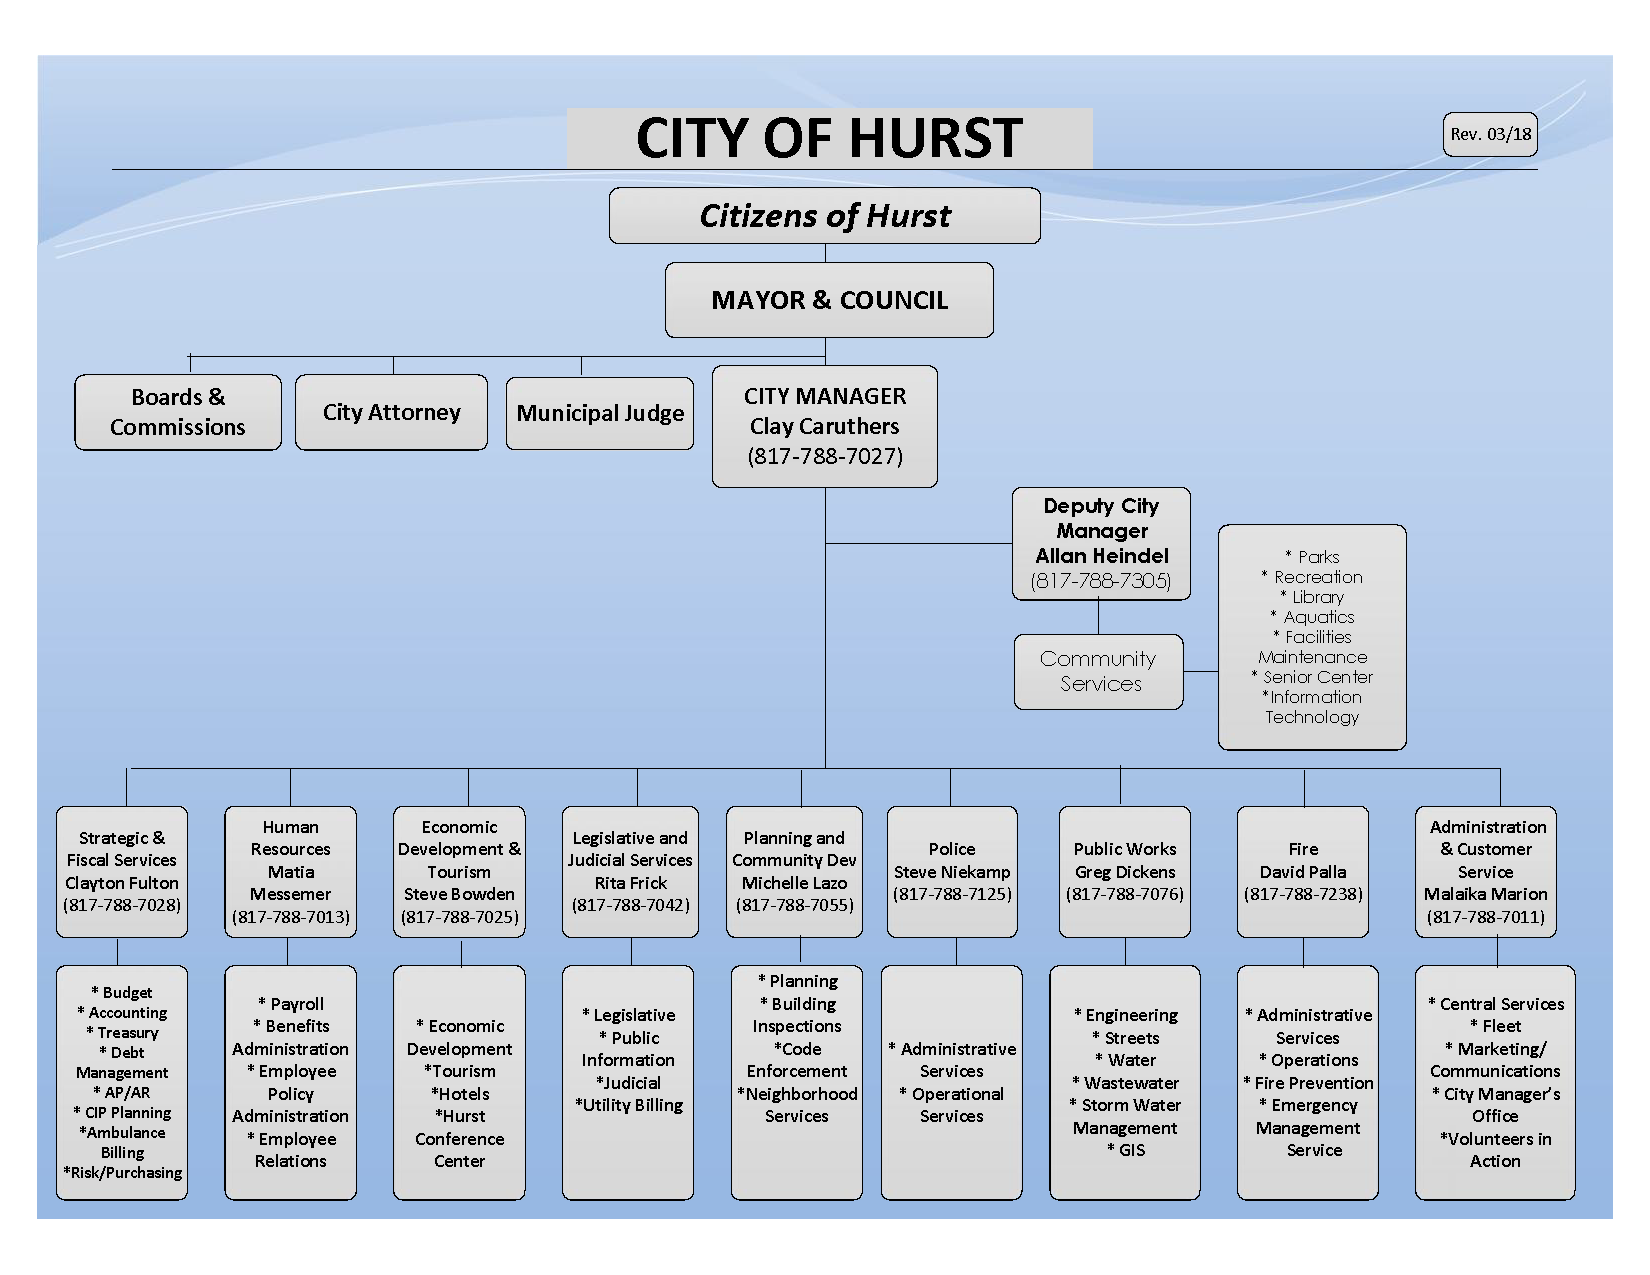 City of Hurst organizational chart FY 2018 2019